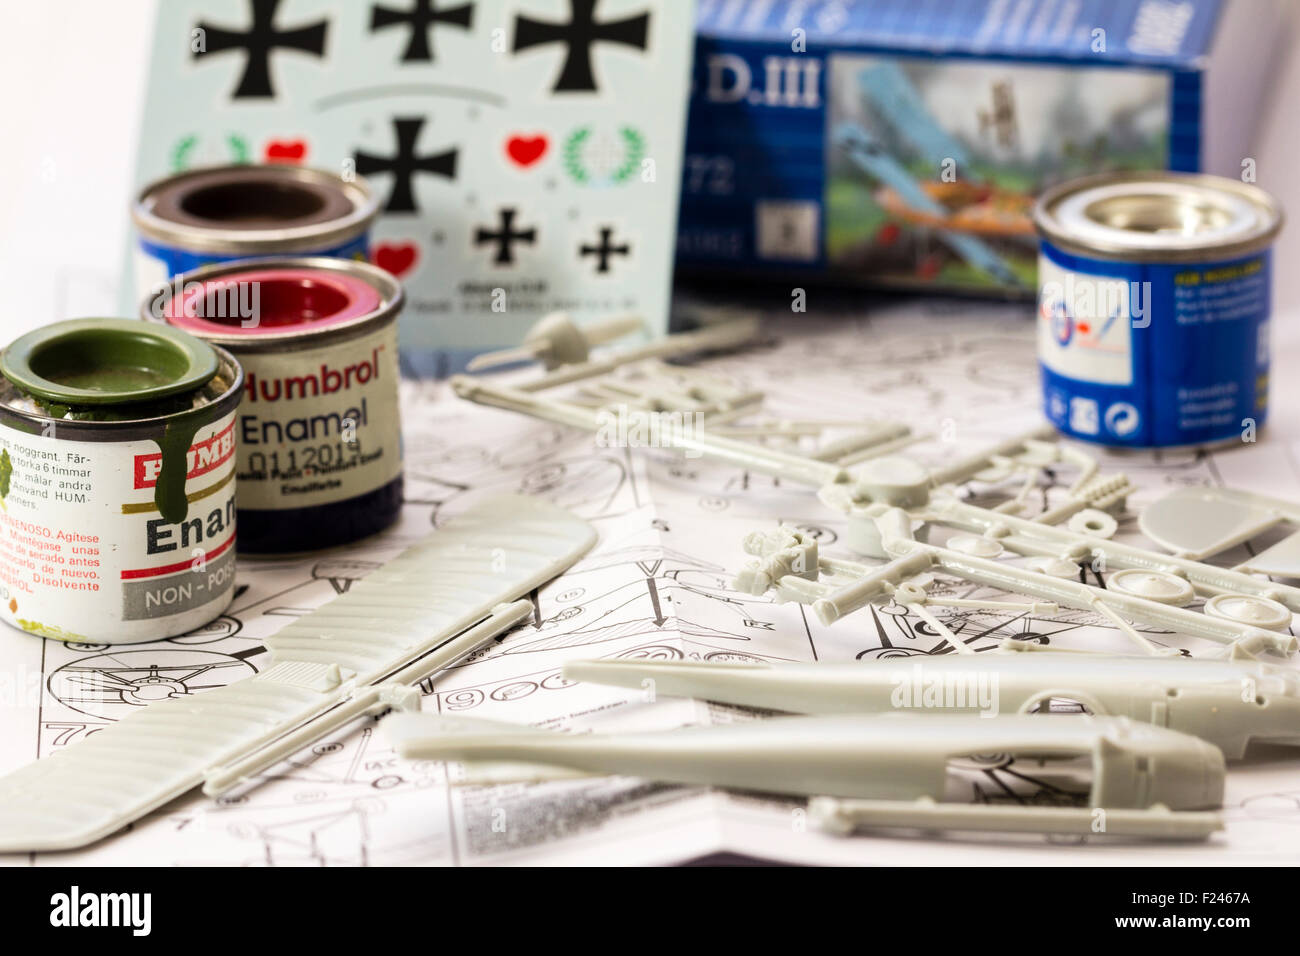 Revell first world war model aircraft kit, instruction sheet, spurs with parts on, tins of modelling paint and transfer - Stock Image